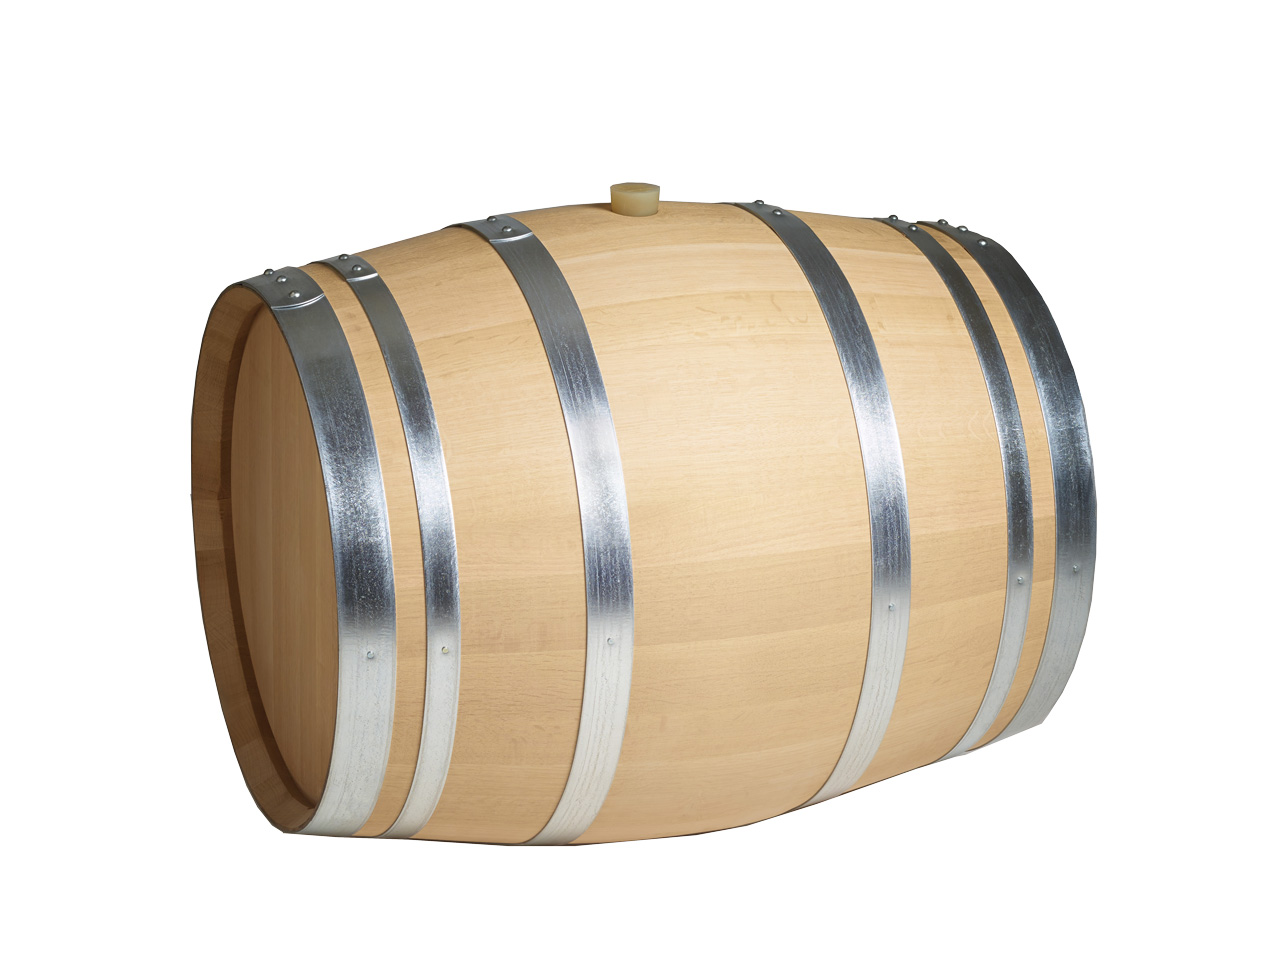 Barrel of Burgundy